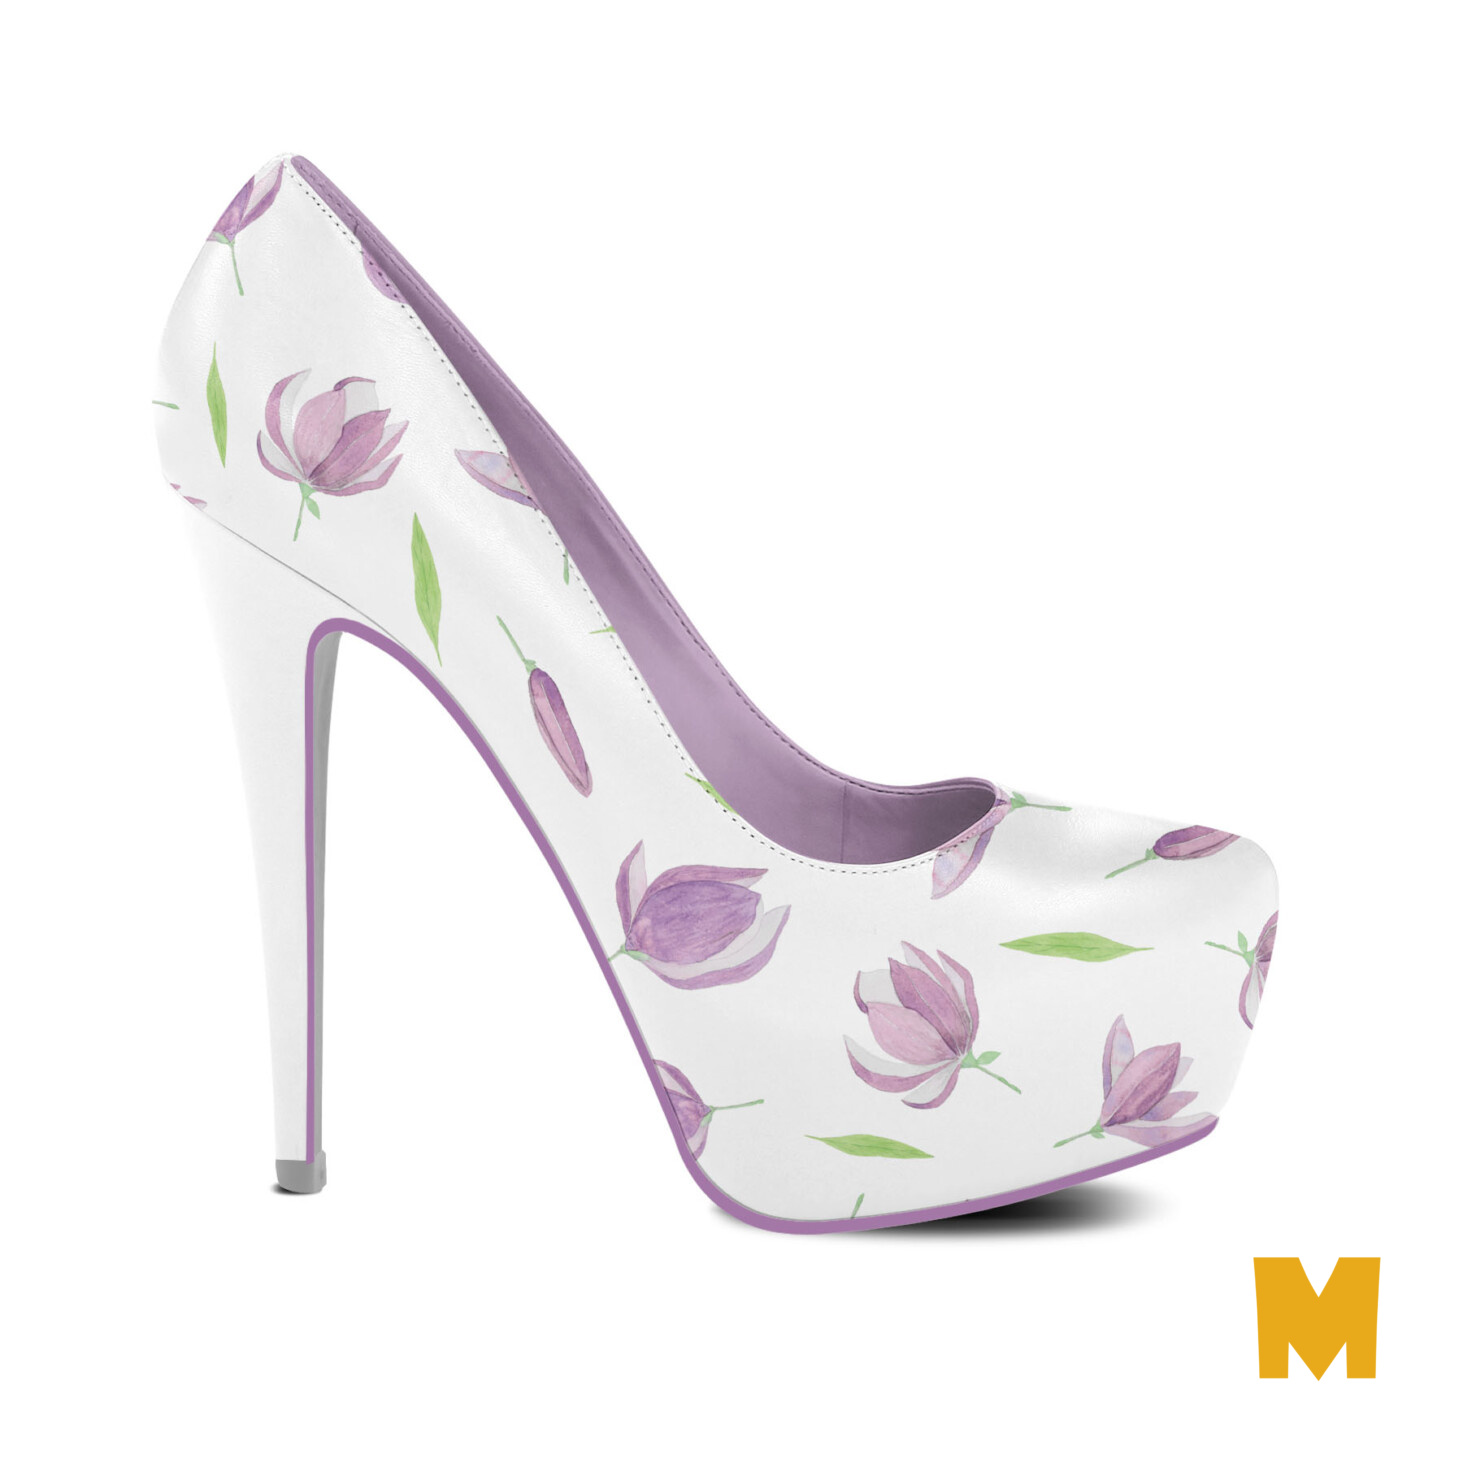 Free Ladies Party Shoes Design Mockup